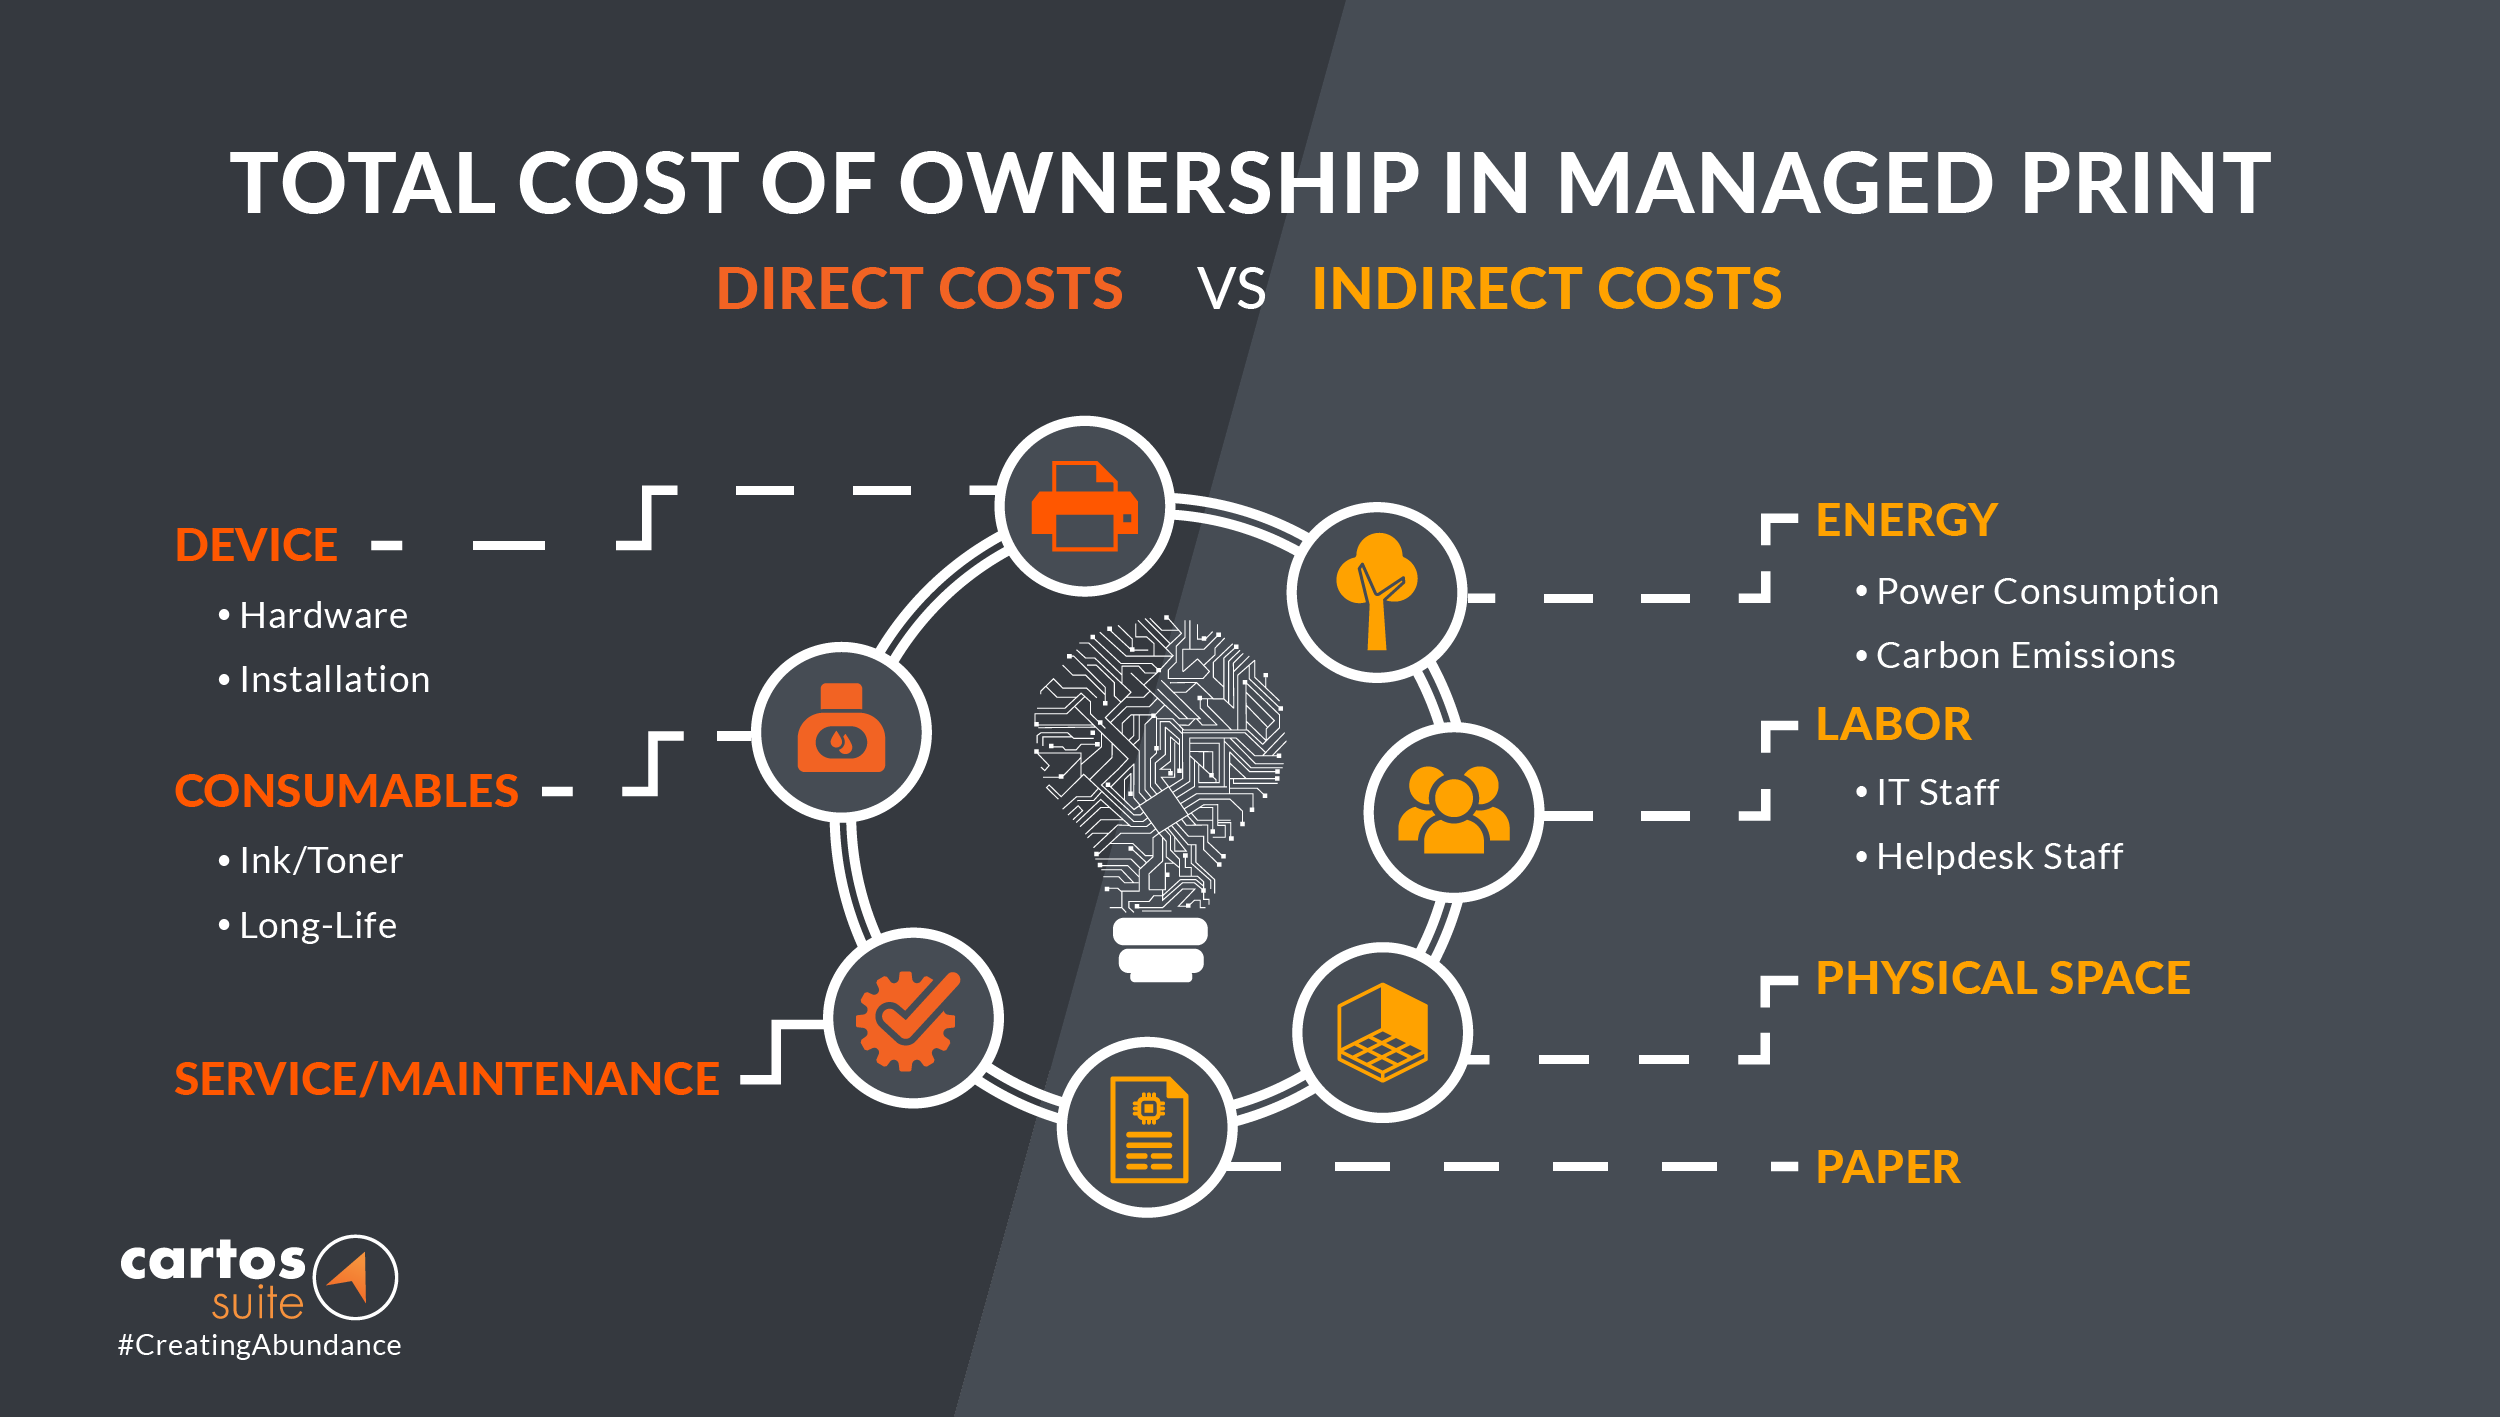 Graphic of total cost of ownership direct and indirect costs for managed print services